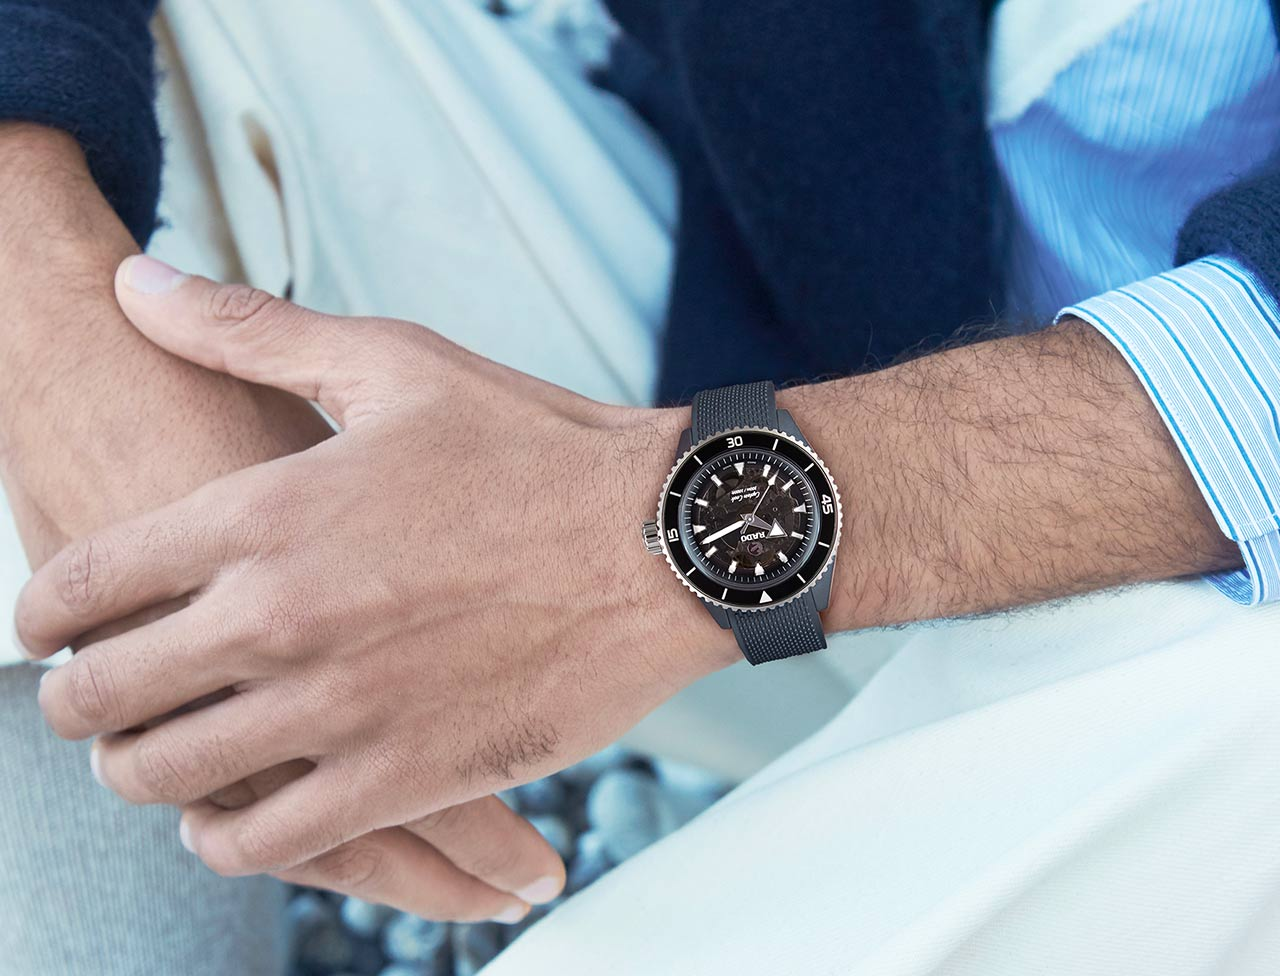 Discover the beauty of Rado's updated Captain Cook High-Tech Ceramic timepieces